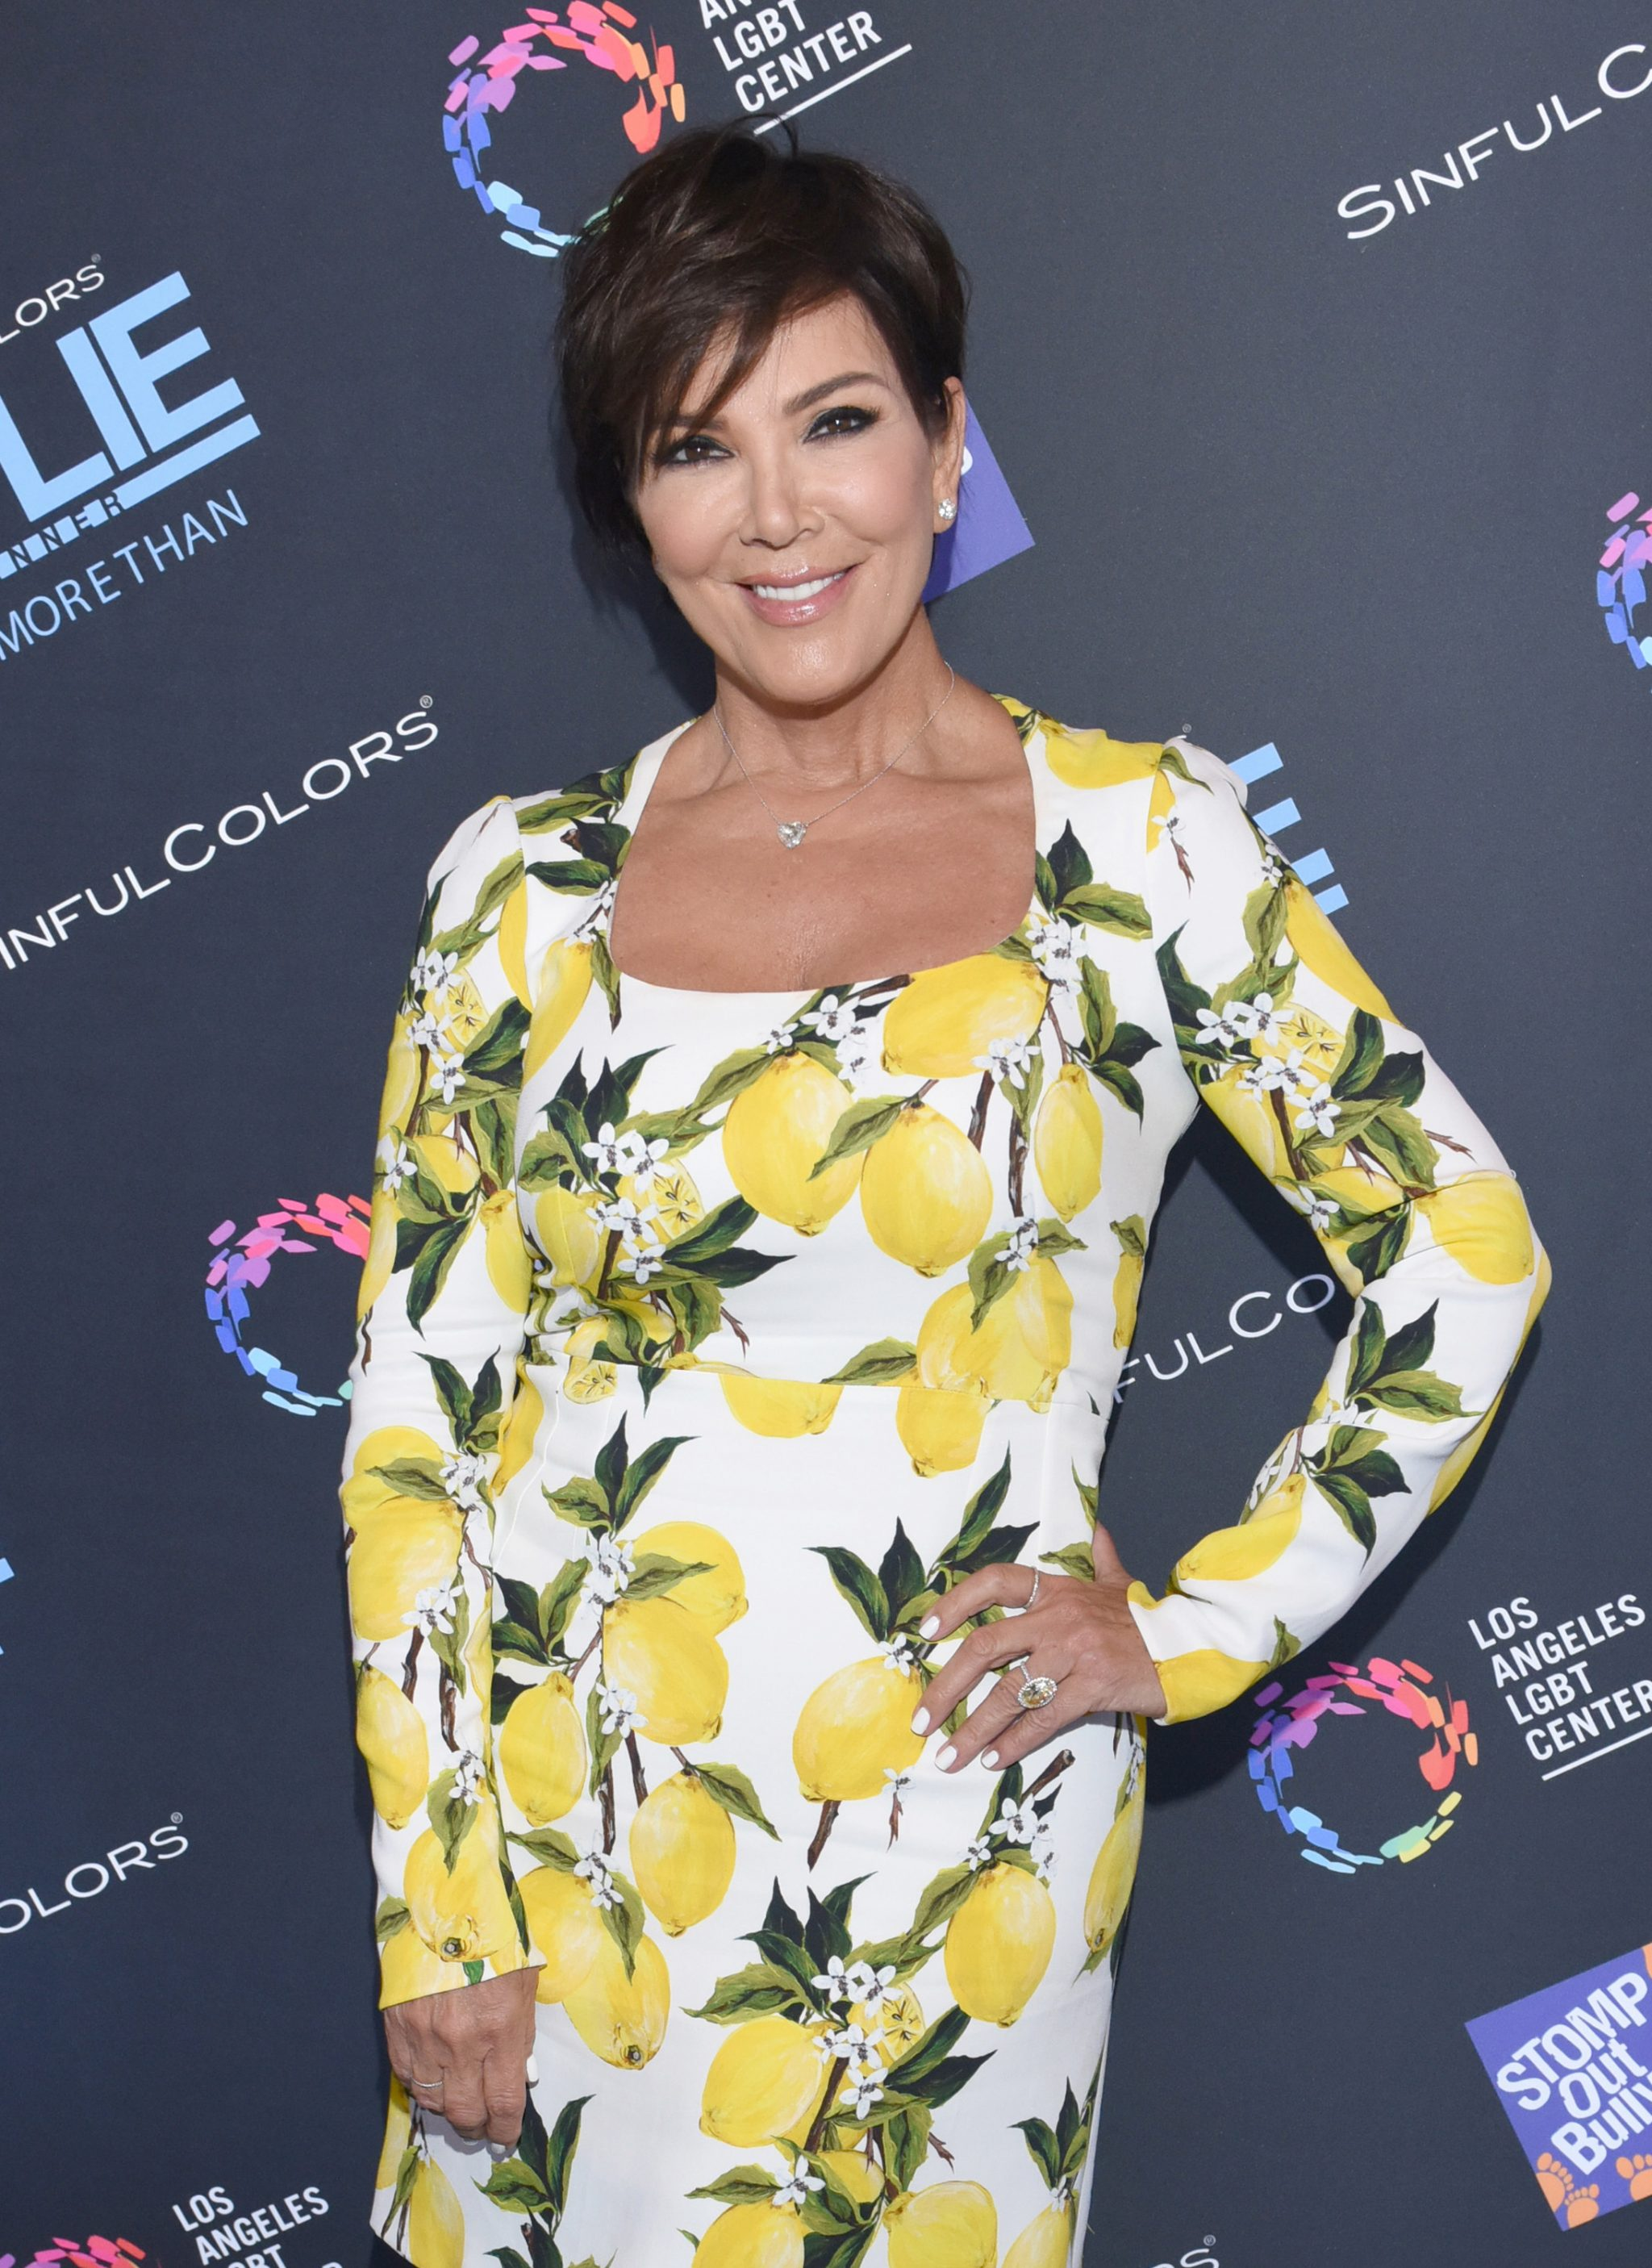 LOS ANGELES, CA - JULY 14:  (EXCLUSIVE COVERAGE) Kris Jenner attends SinfulColors and Kylie Jenner Announce charitybuzz.com Auction for Anti Bullying on July 14, 2016 in Los Angeles, California.  (Photo by Vivien Killilea/Getty Images for SinfulColors)